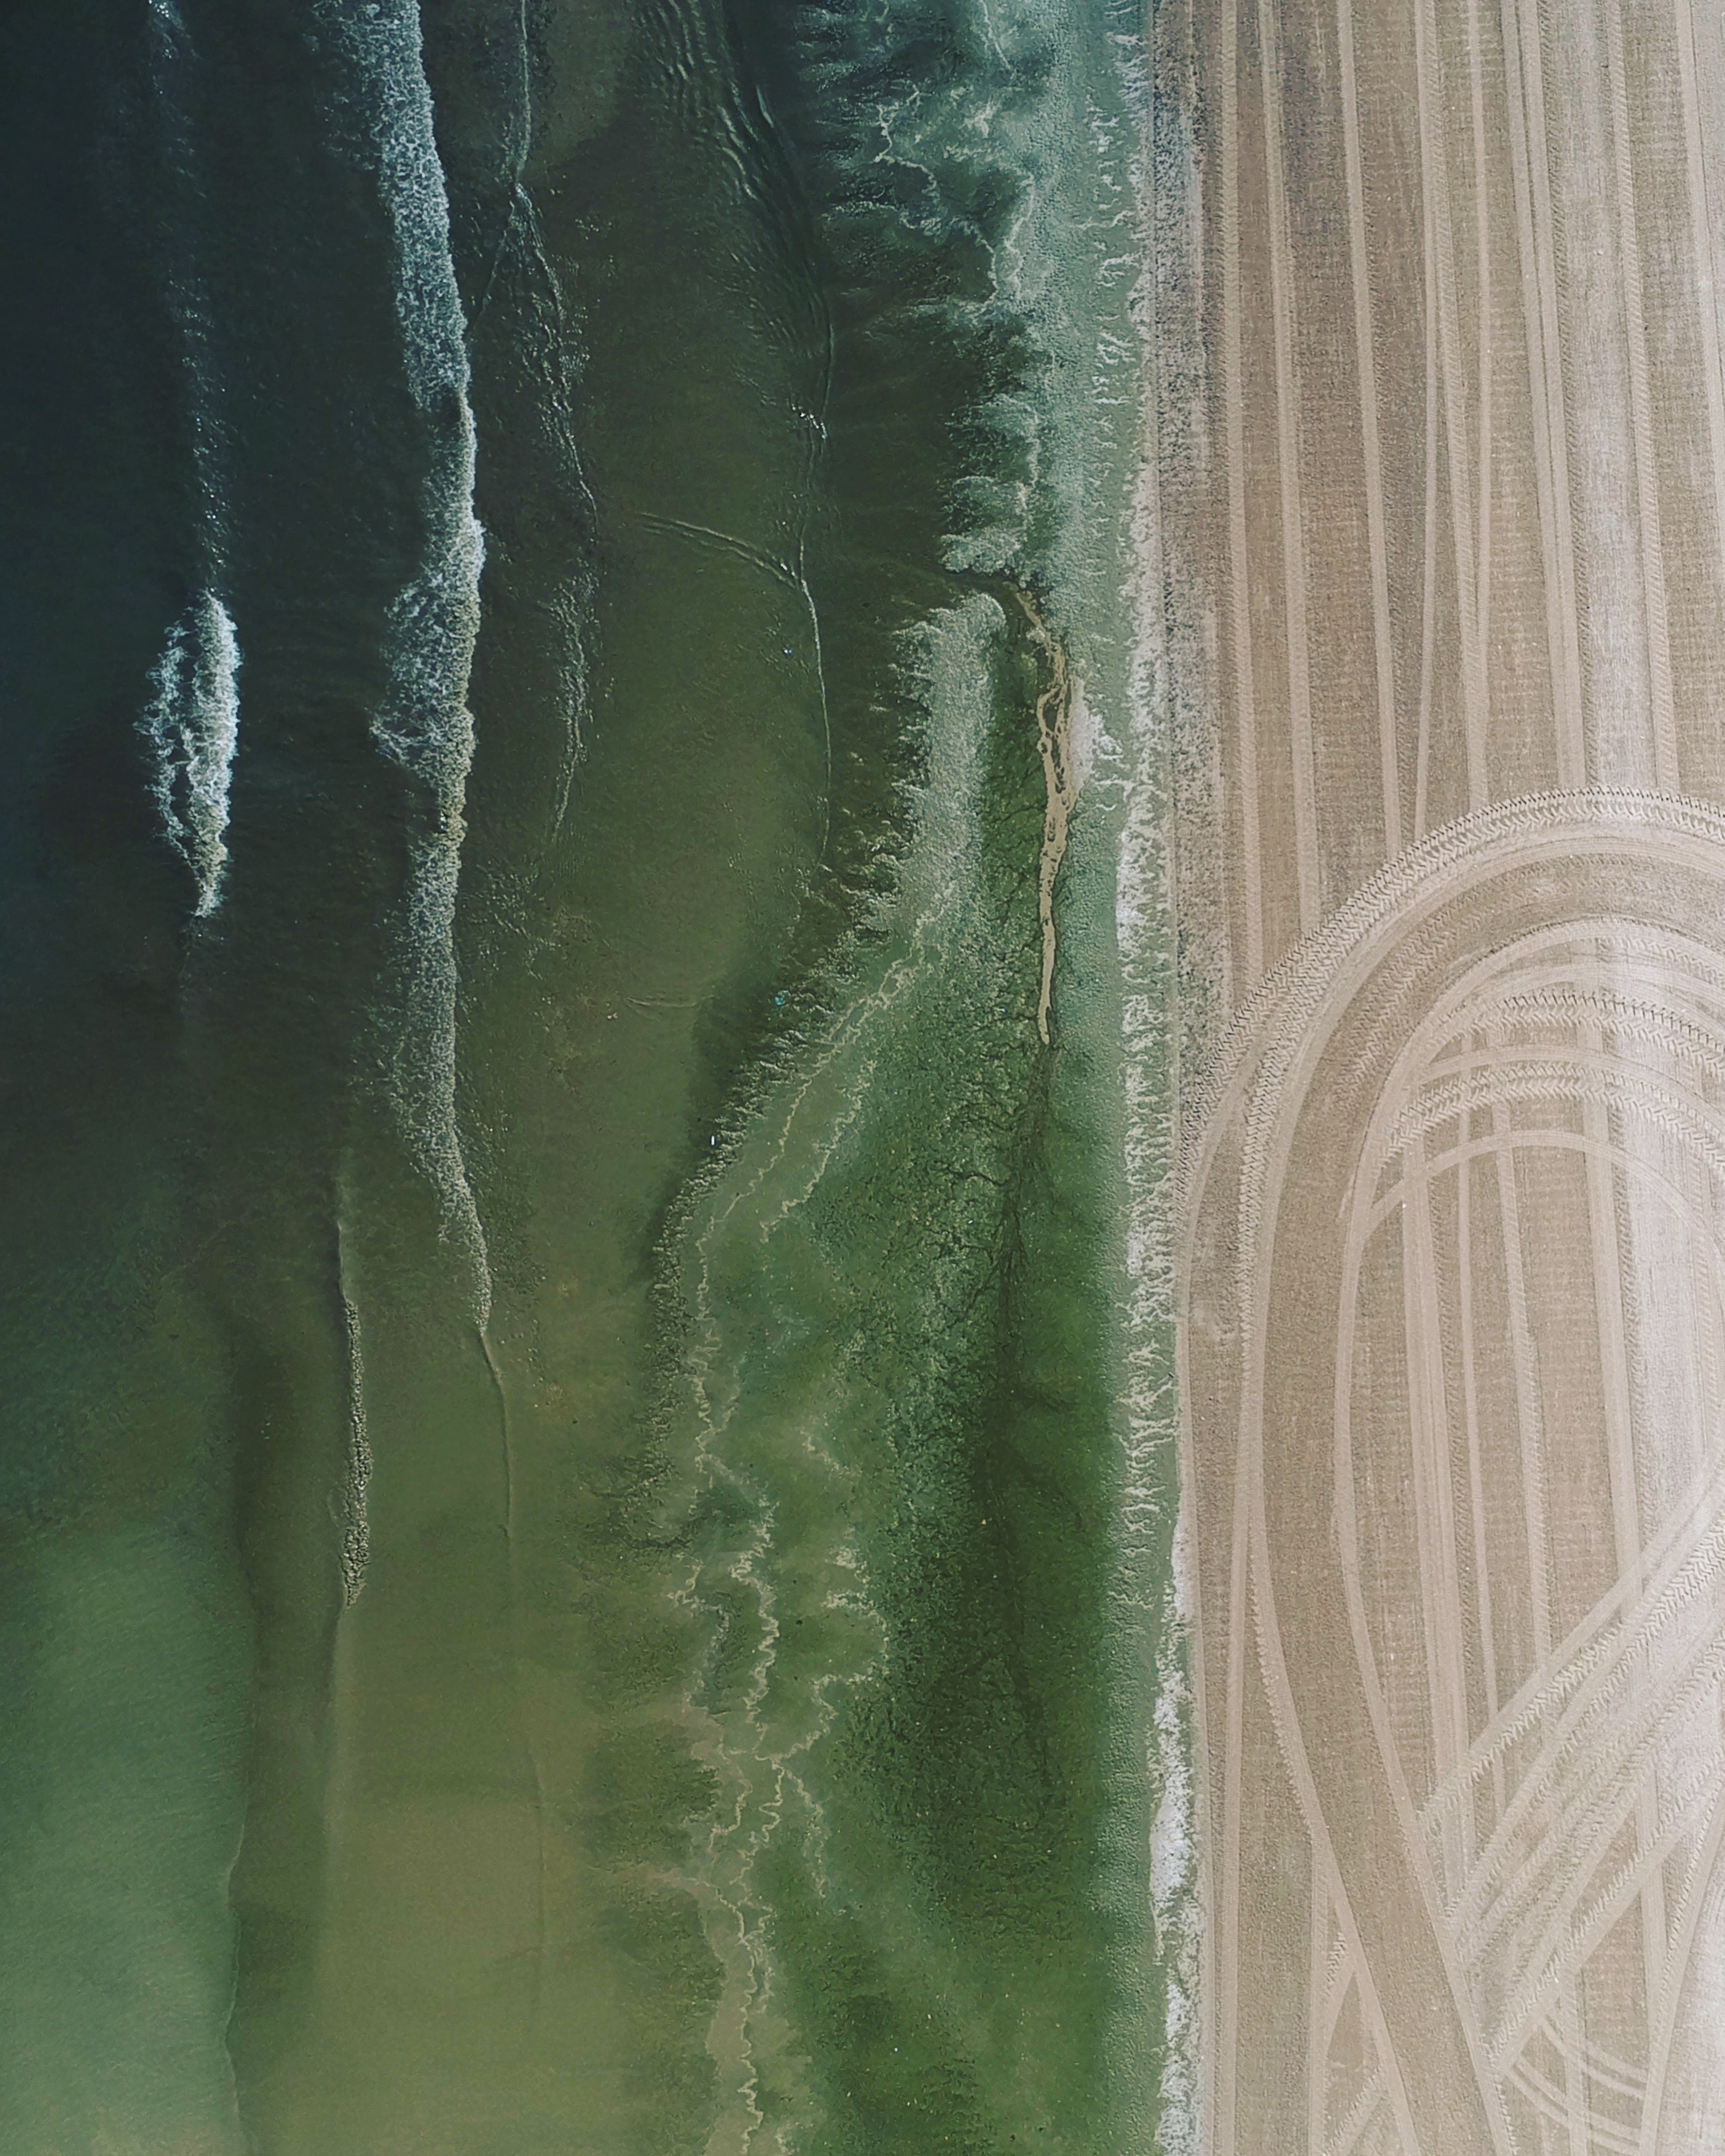 aerial photo of soil and body of water